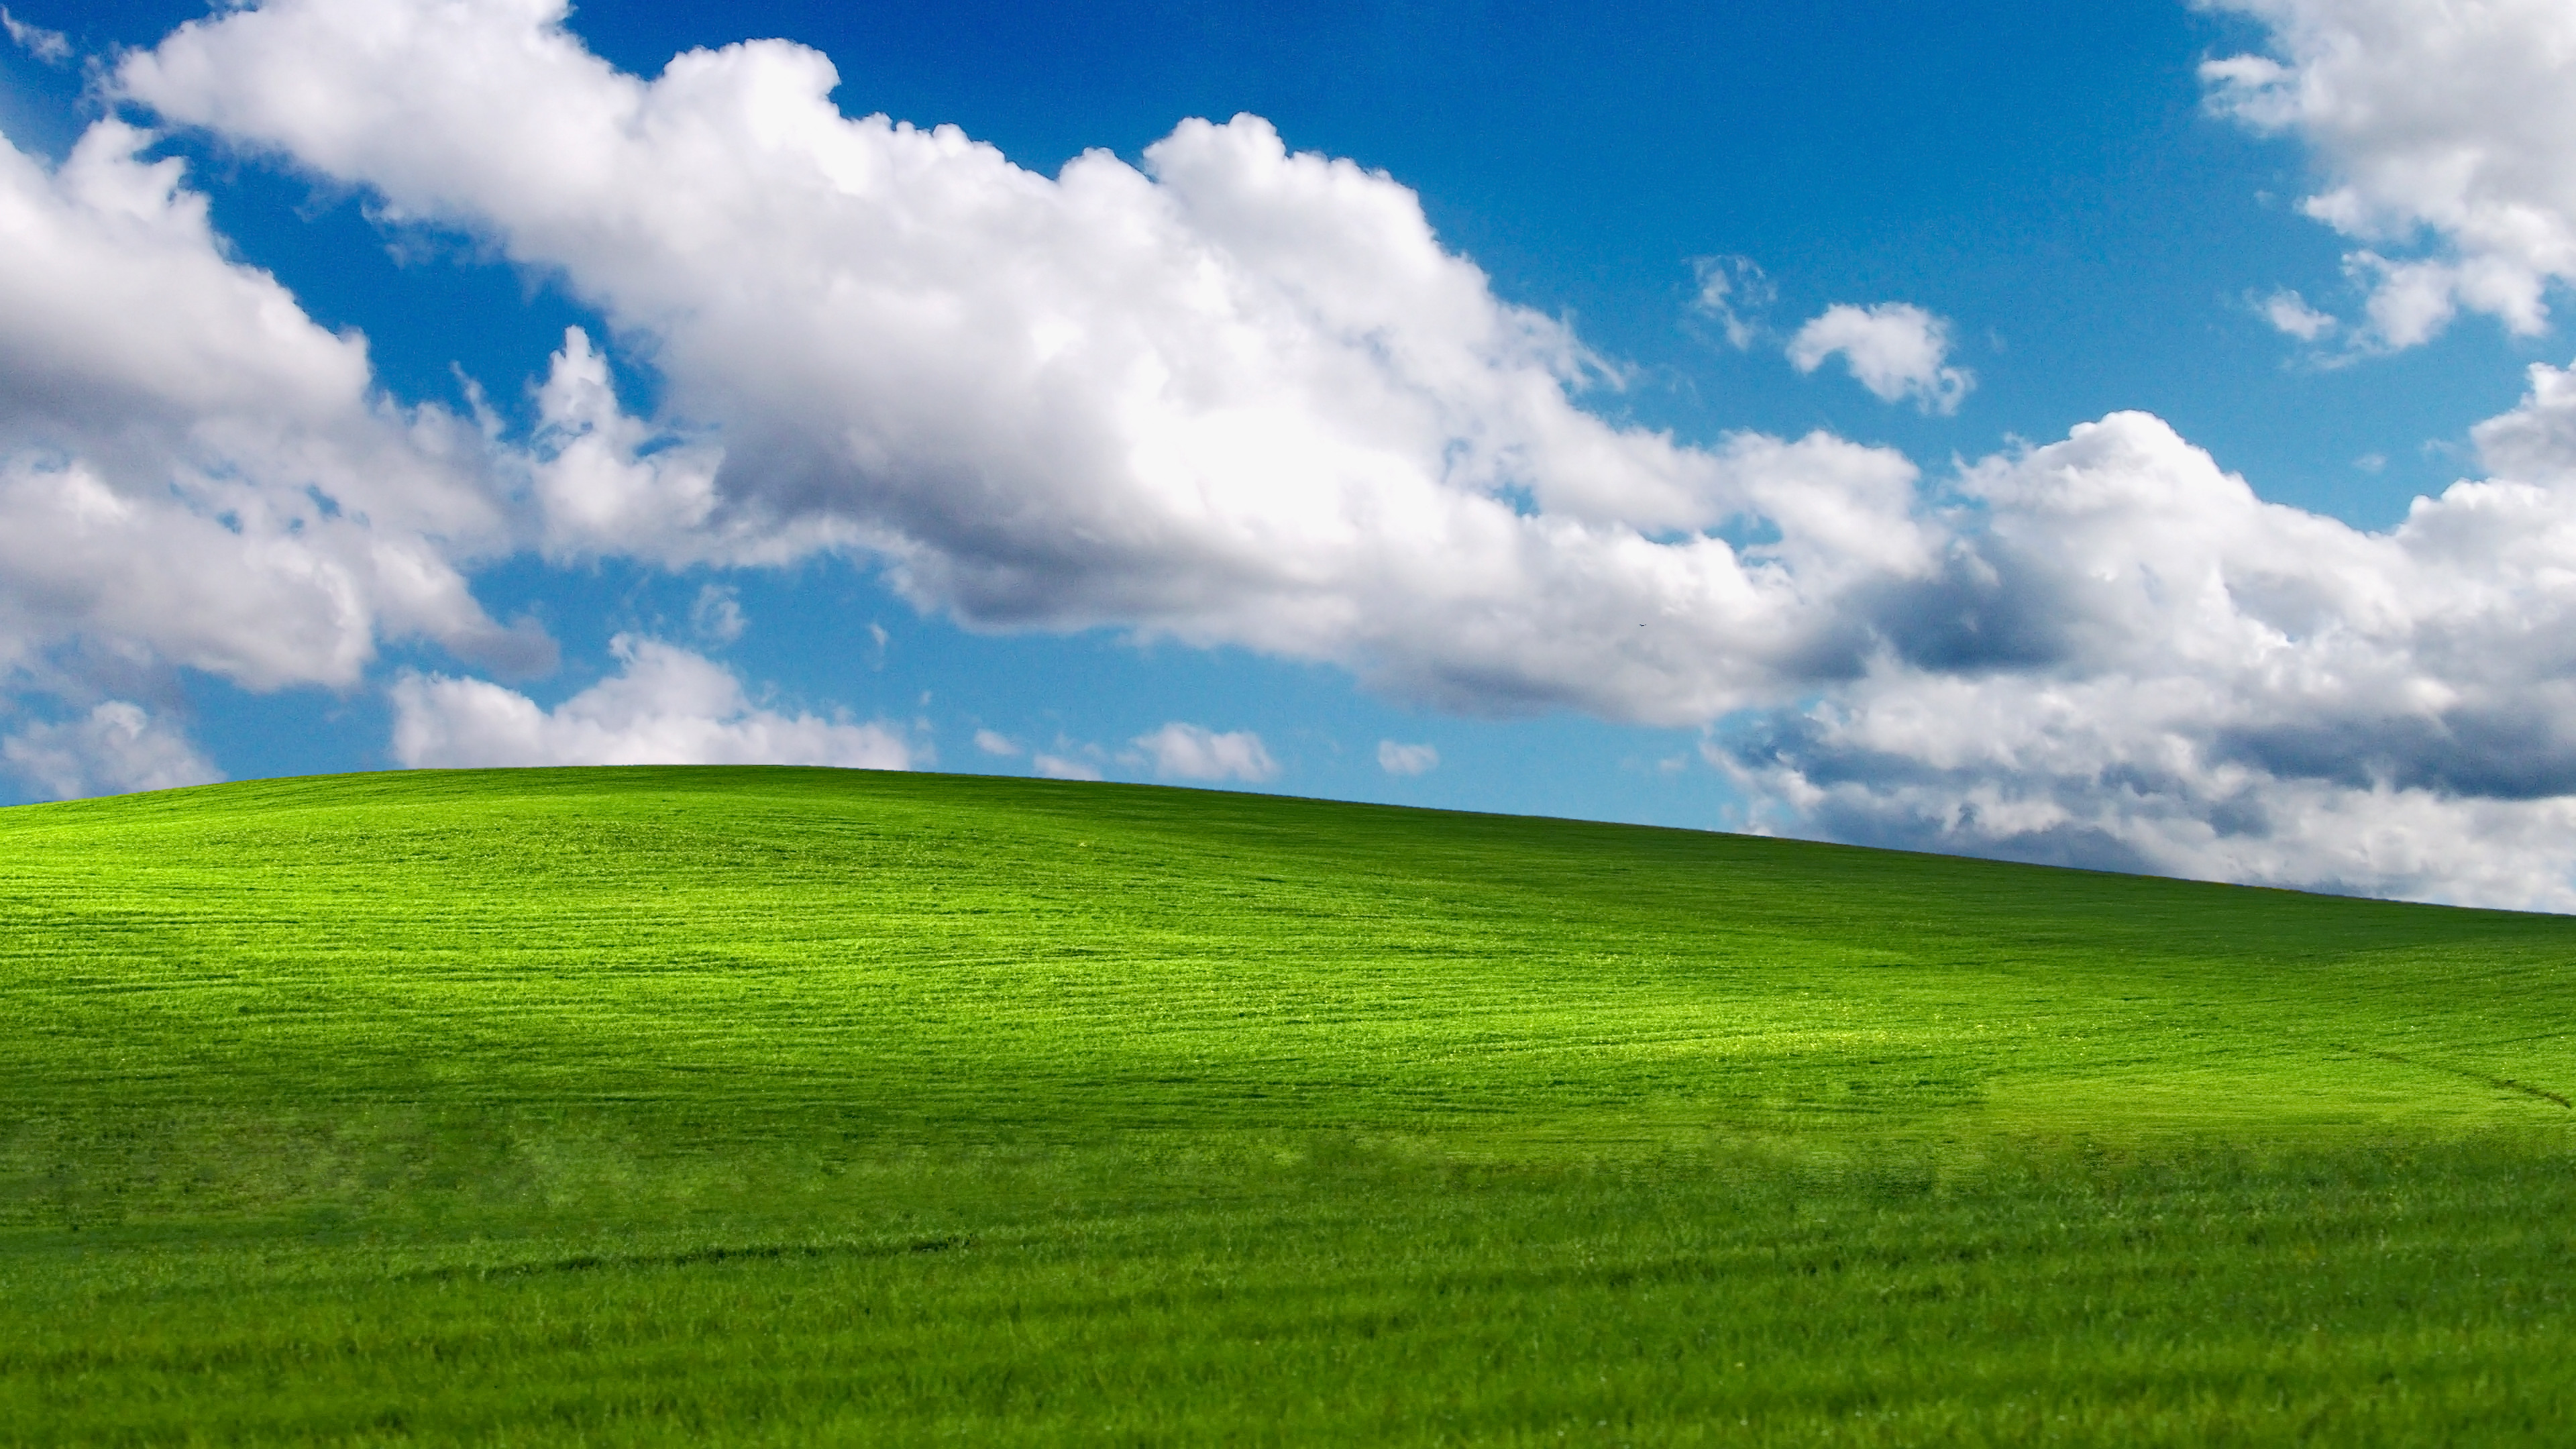 3840x2160 Free Windows Xp Wallpaper Collection Of Backgrounds